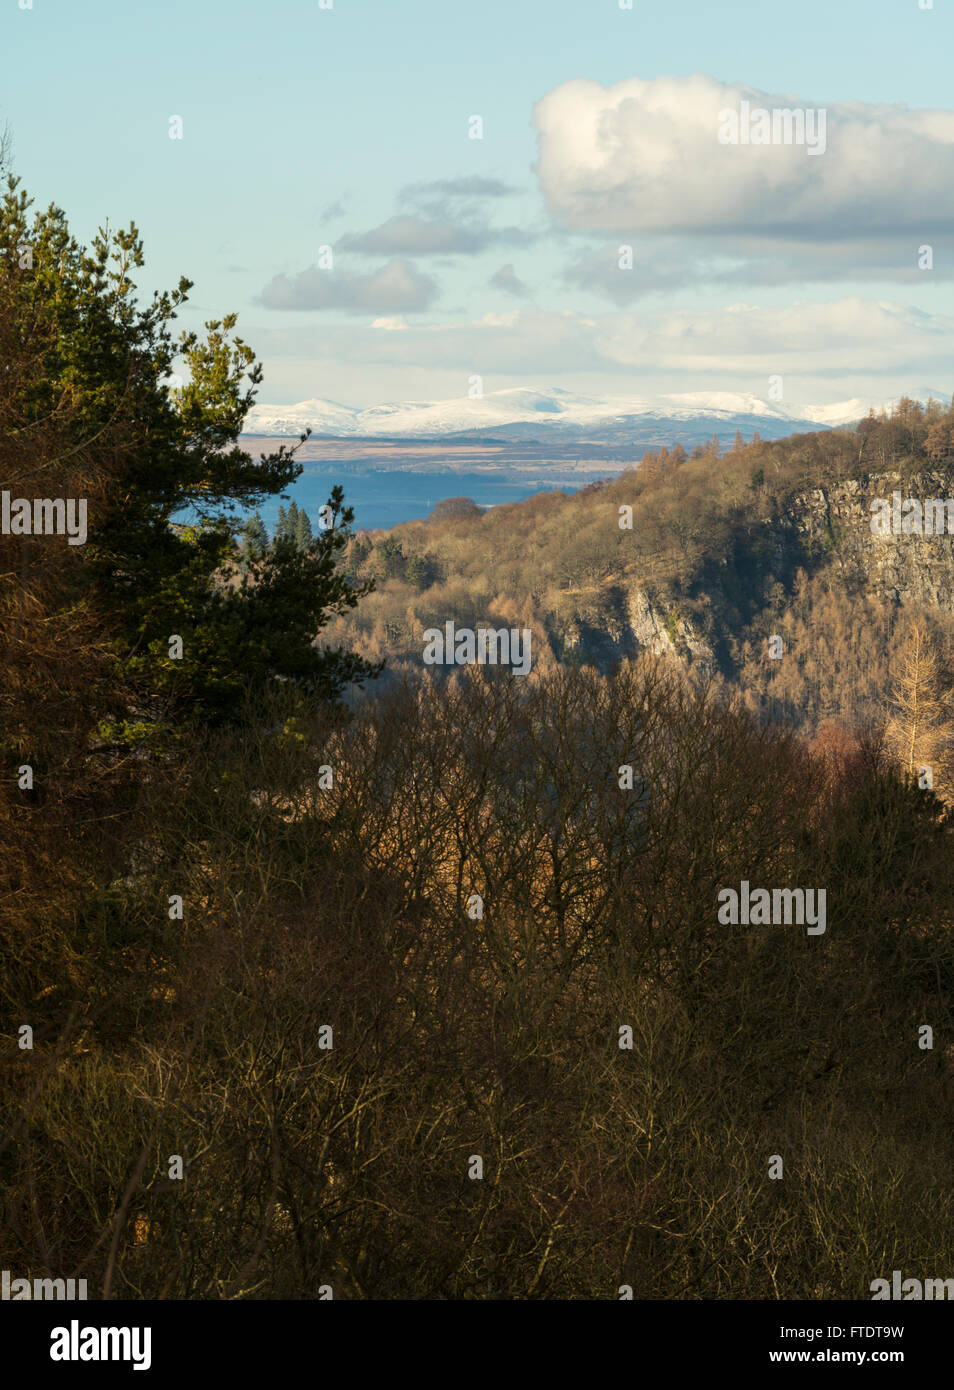 View north towards Kinnoull Hill and Grampian Mountains from Moncrieffe Hill, Perthshire, Scotland - Stock Image